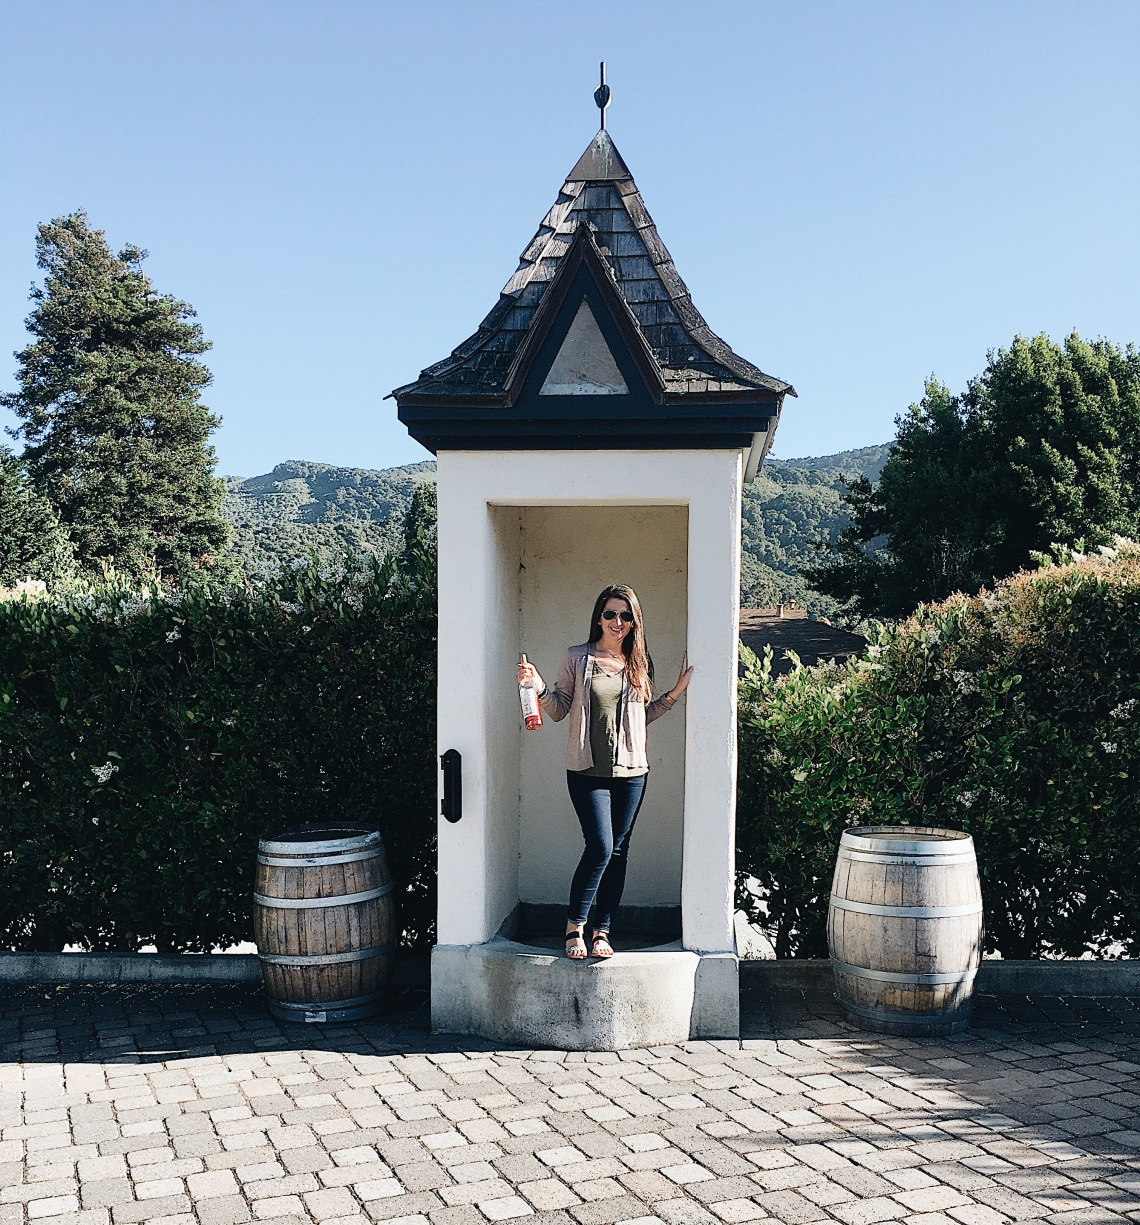 Erin from cathedrals and cafes poses in a small tower of folktale winery and vineyards